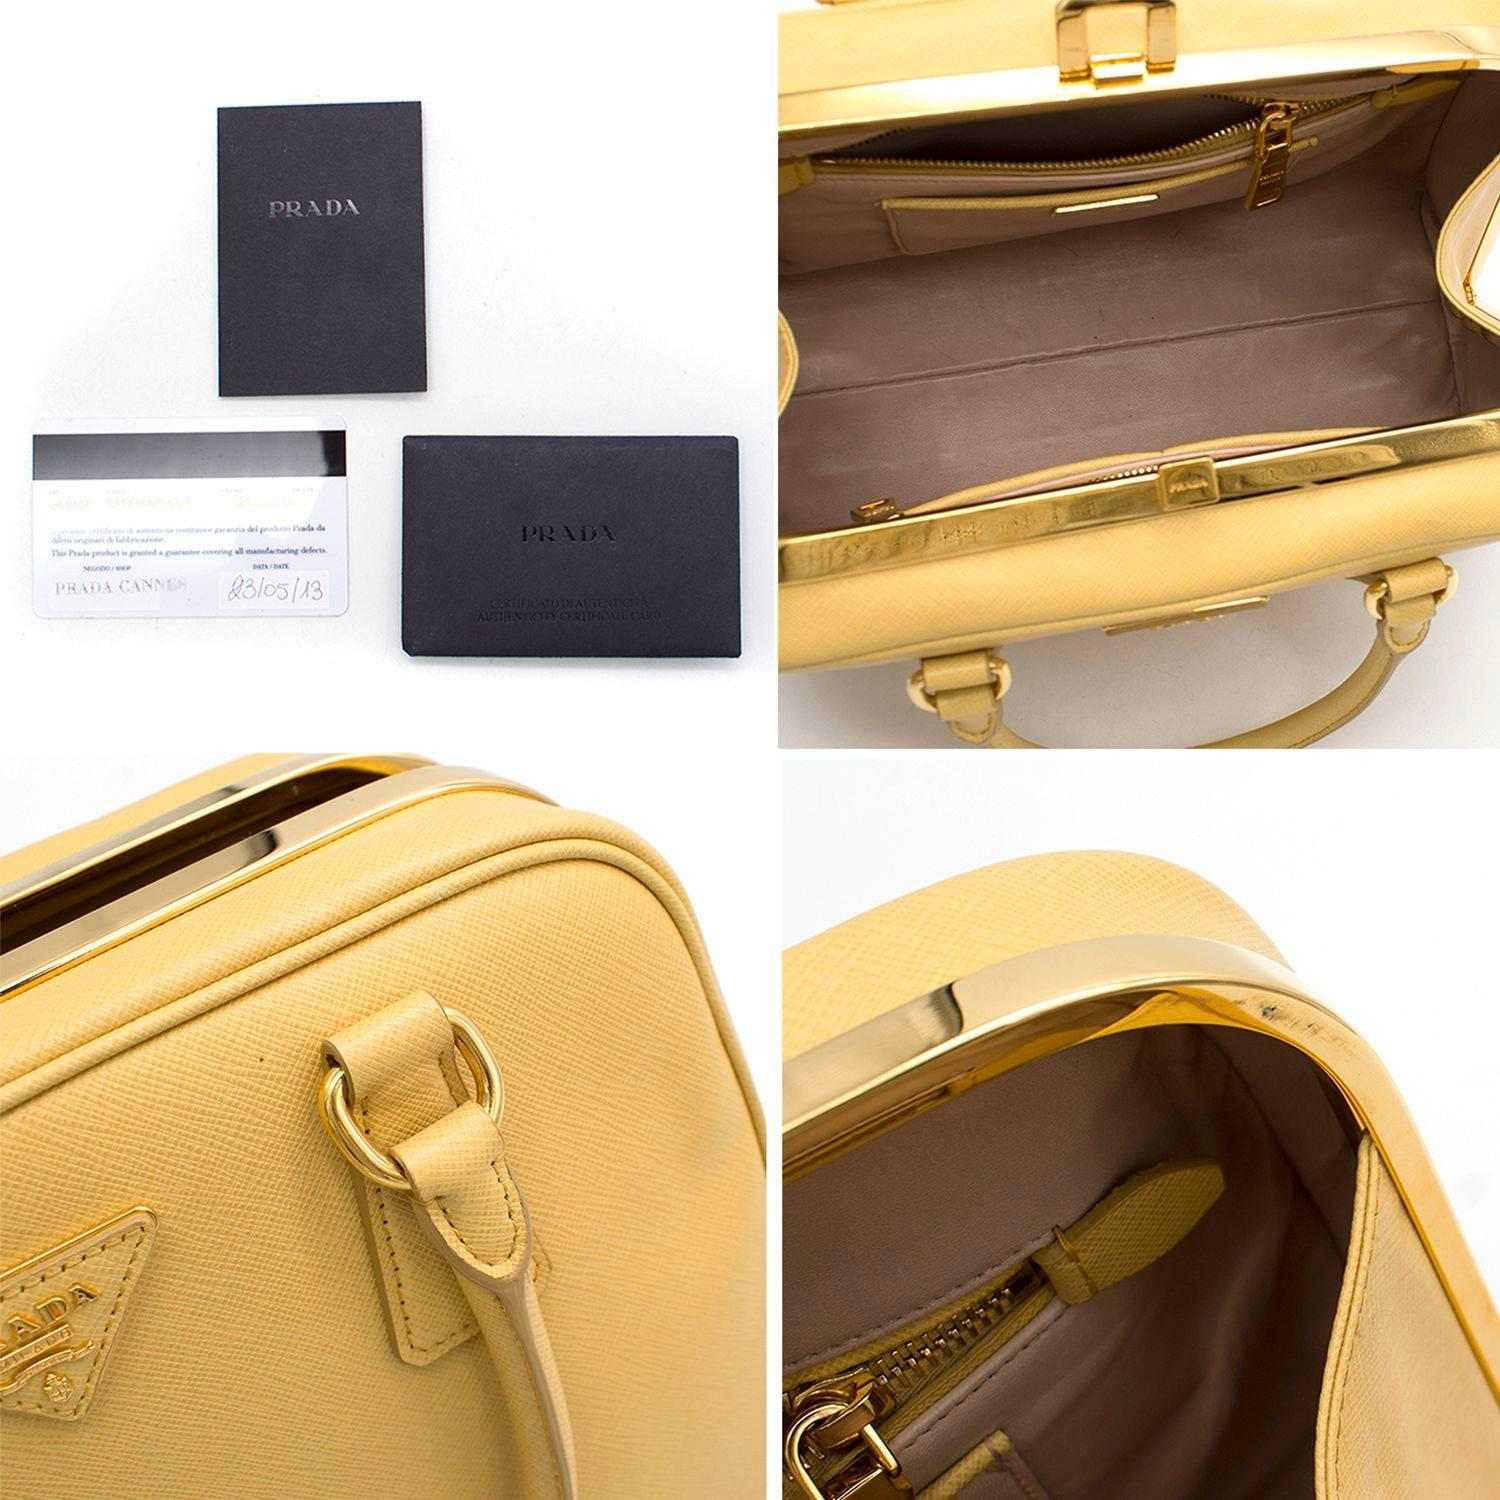 Prada Pyramid Canary Yellow Top Handle Bag For Sale at 1stdibs 7d1f0c05667ec